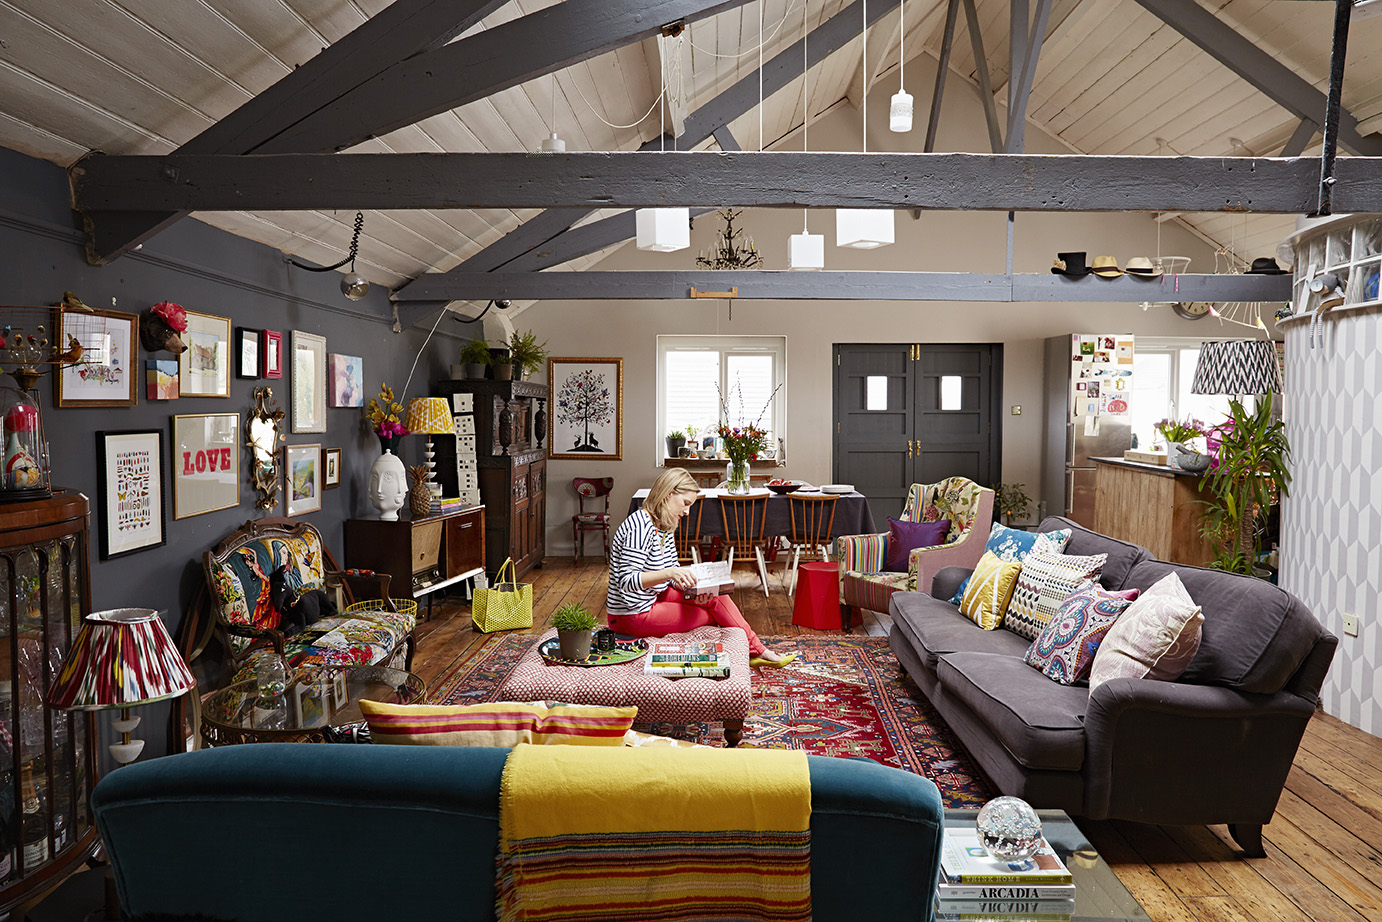 Sophie robinson from the great interior design challenge - Design your living room ...